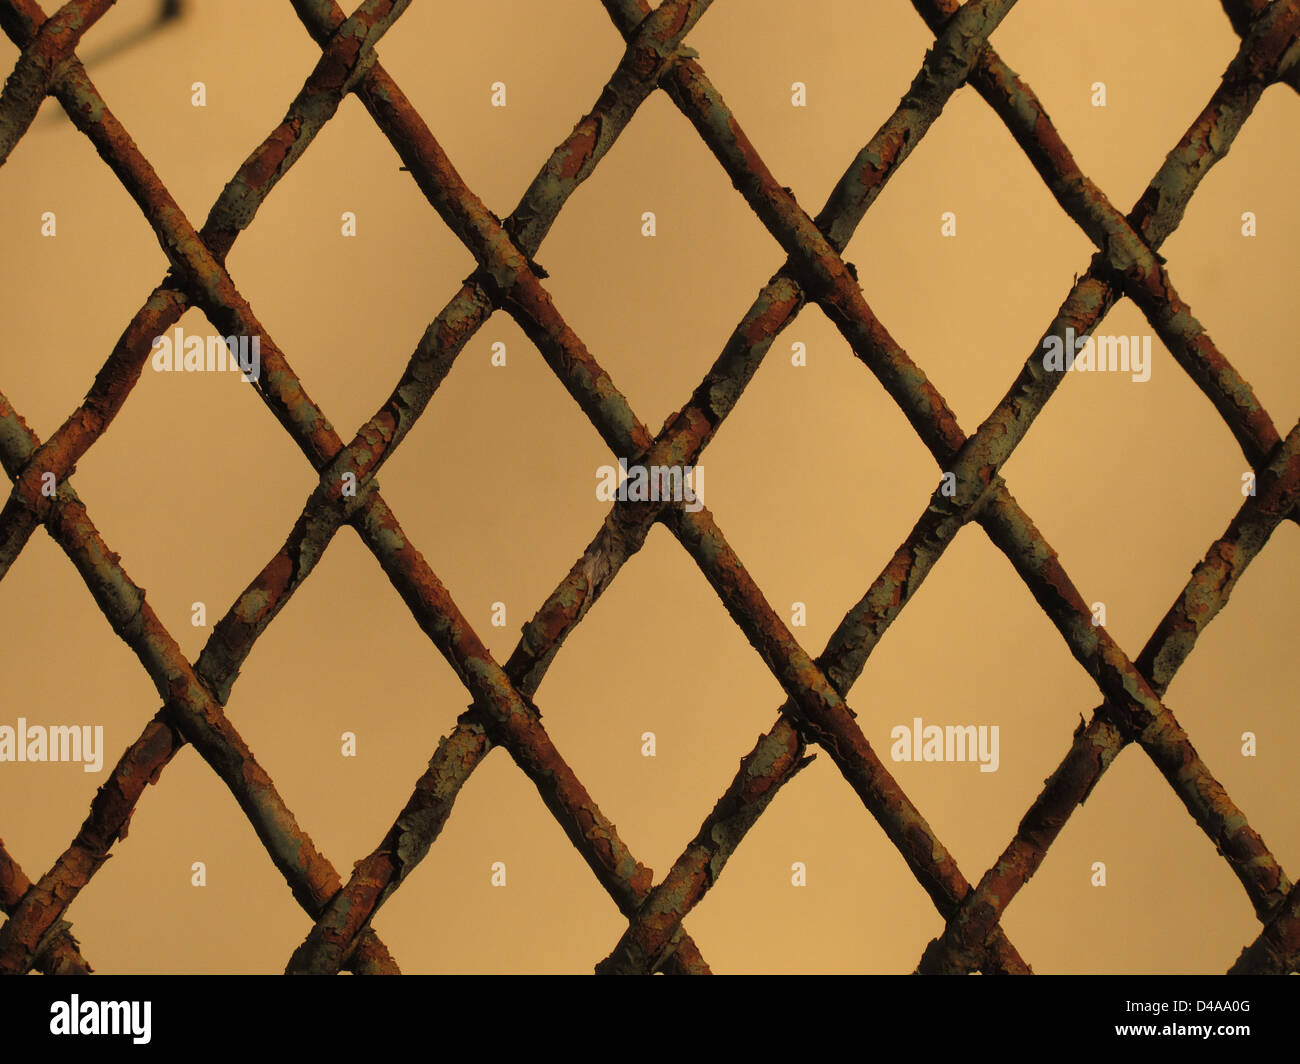 fence made by iron net lozenge shaped - Stock Image